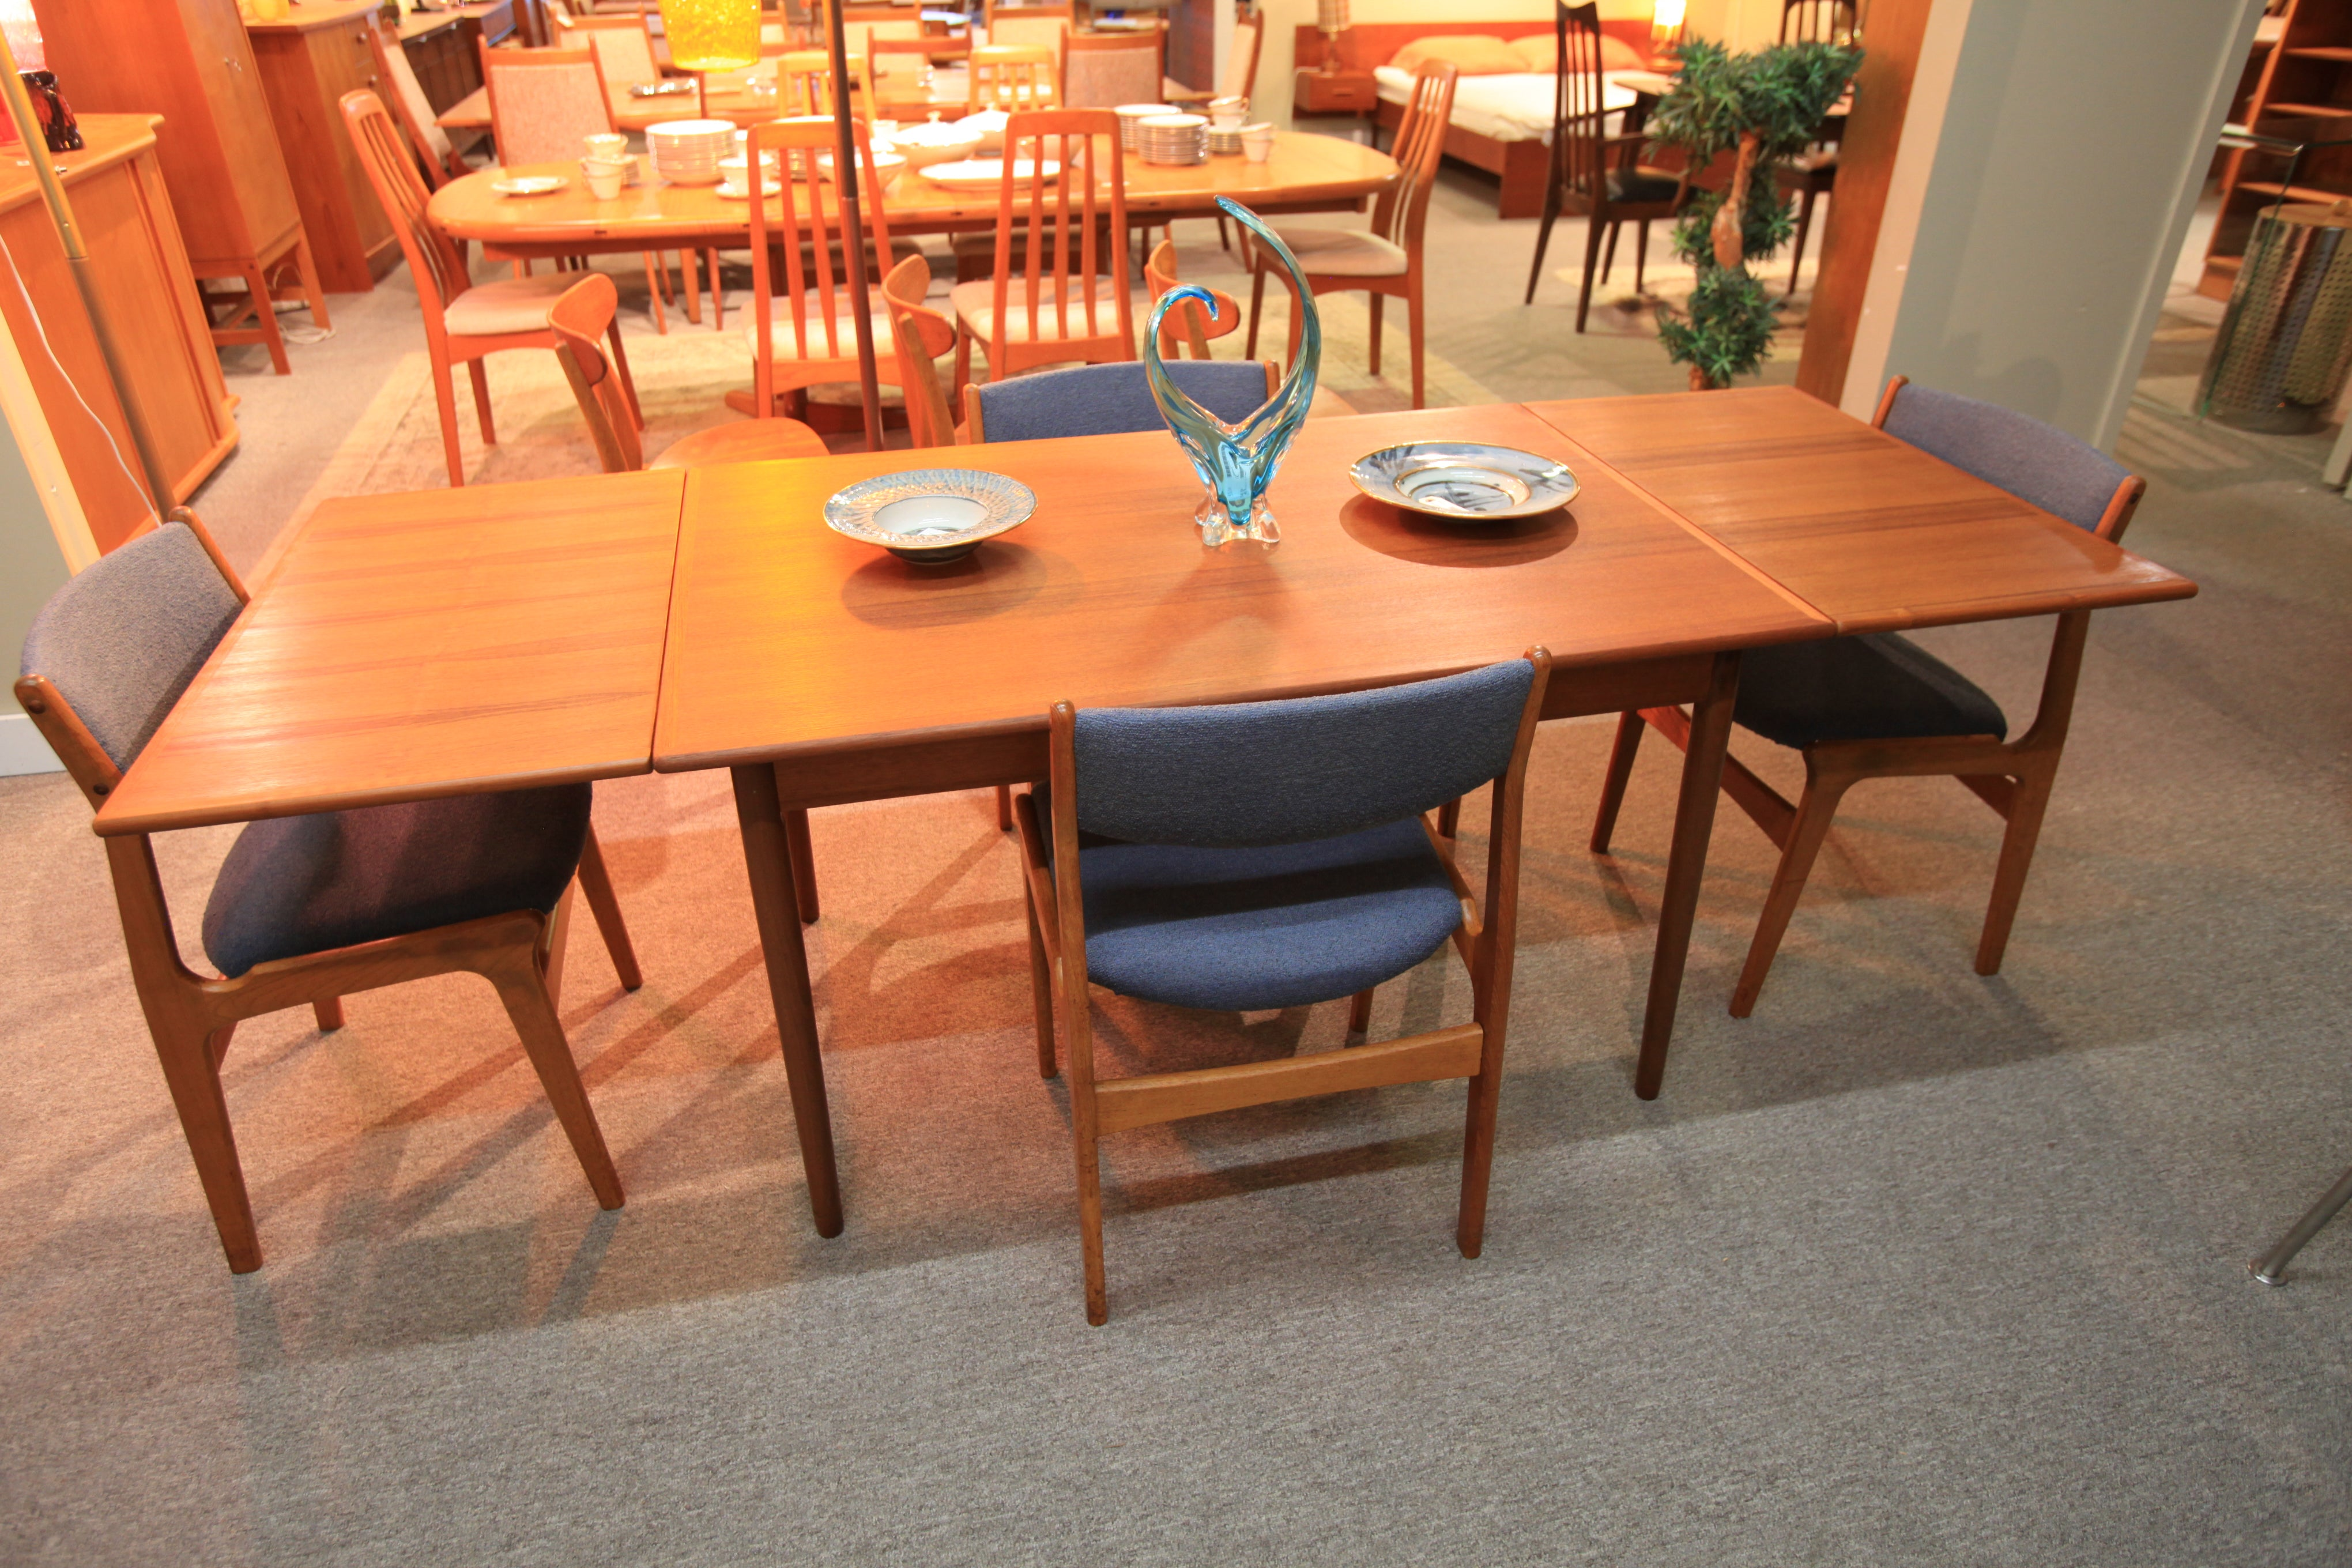 "Vintage Danish Teak Dining Table w/ Pullout Extensions (85"" x 32.5"") or (48"" x 32.5"")"